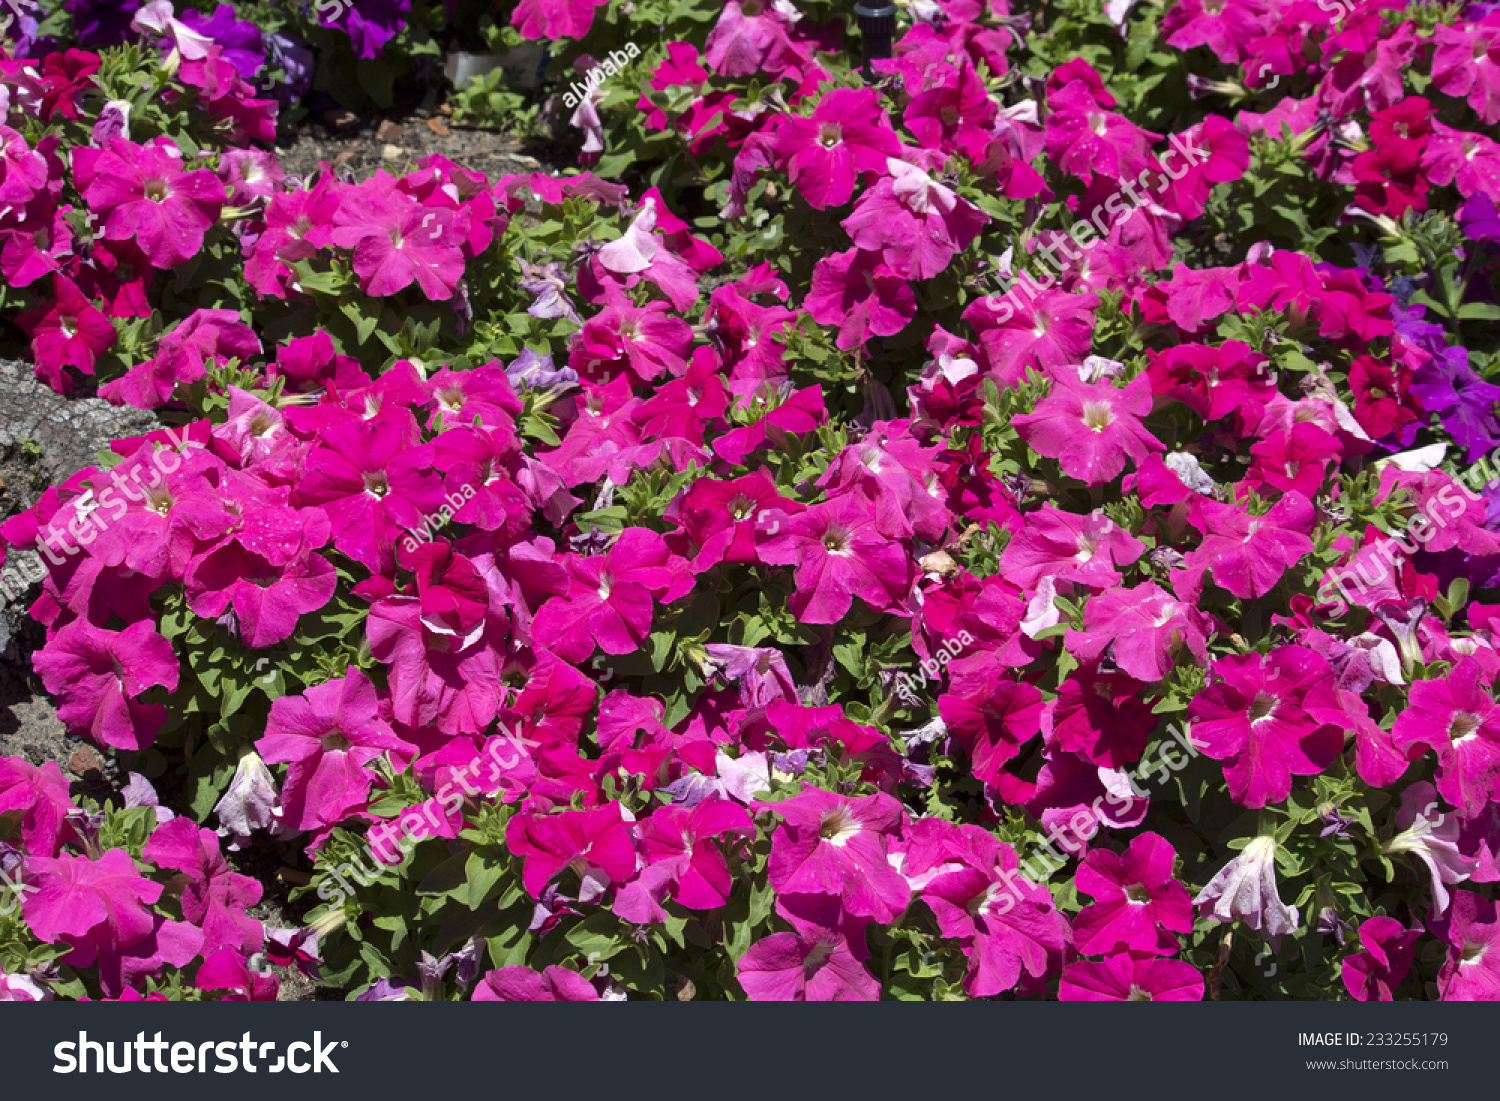 Cheerful Single Pink Flowers Of Annual Petunias Family Solanaceae